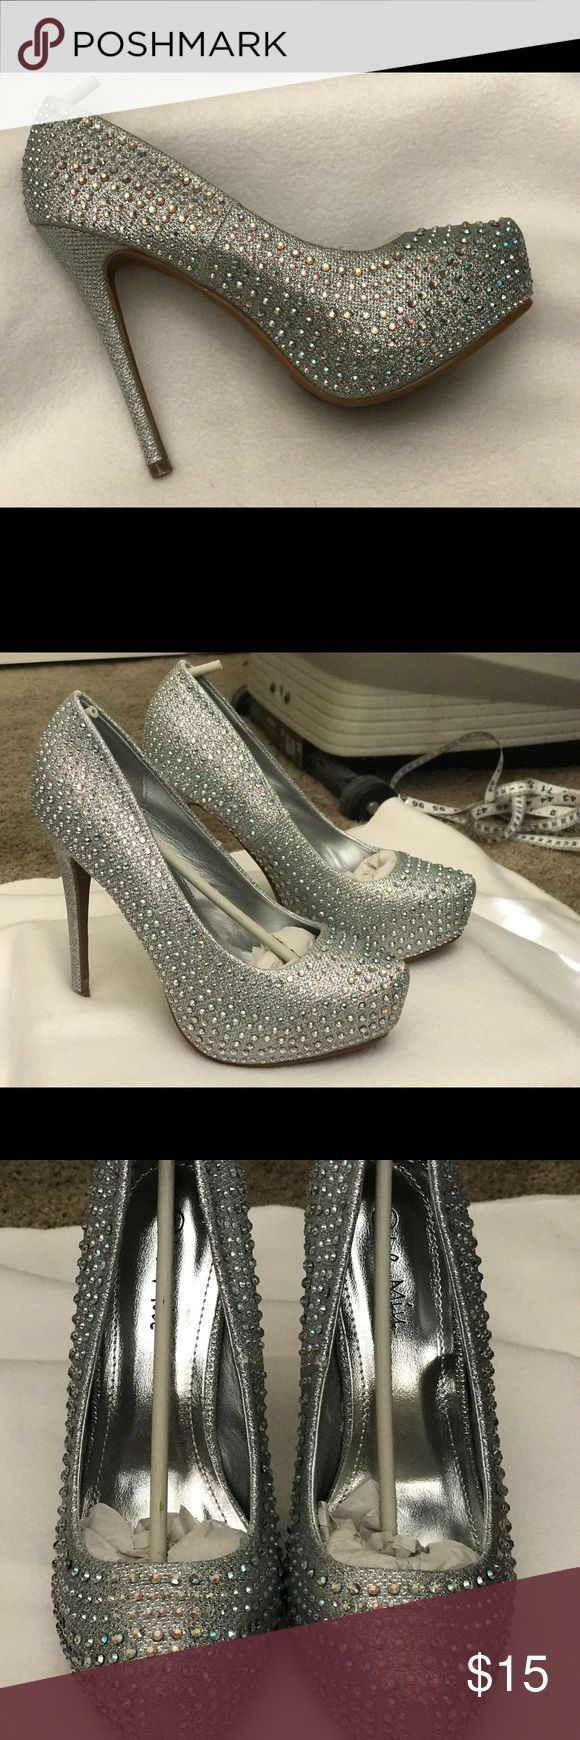 Silver Rhinestone High Heel Stilettos Brand new silver rhinestone heels. Fabric material with shimmery rhinestones. Heel approximately 5 inches high. Very pretty with a Cinderella type vibe. Purchased for party but they were too high and fit more like a size 7.  So Im selling these as a size 7 but the shoe state that they are a size 8. I am a true size 8 and this ain't no 8; a girl's toes don't lie! le miu Shoes Heels